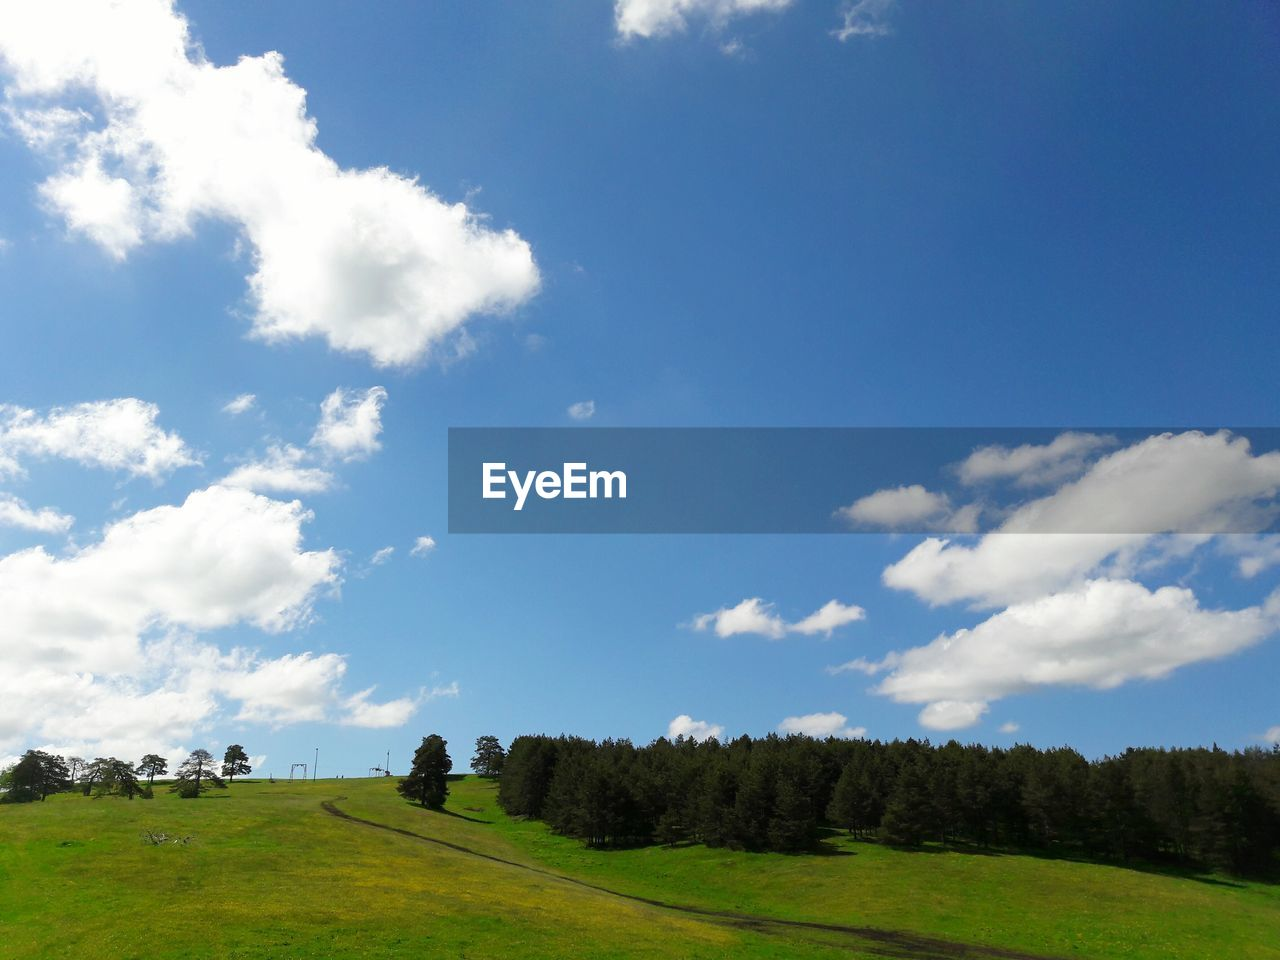 sky, cloud - sky, tree, landscape, nature, grass, tranquility, beauty in nature, day, field, scenics, growth, real people, men, outdoors, one person, people